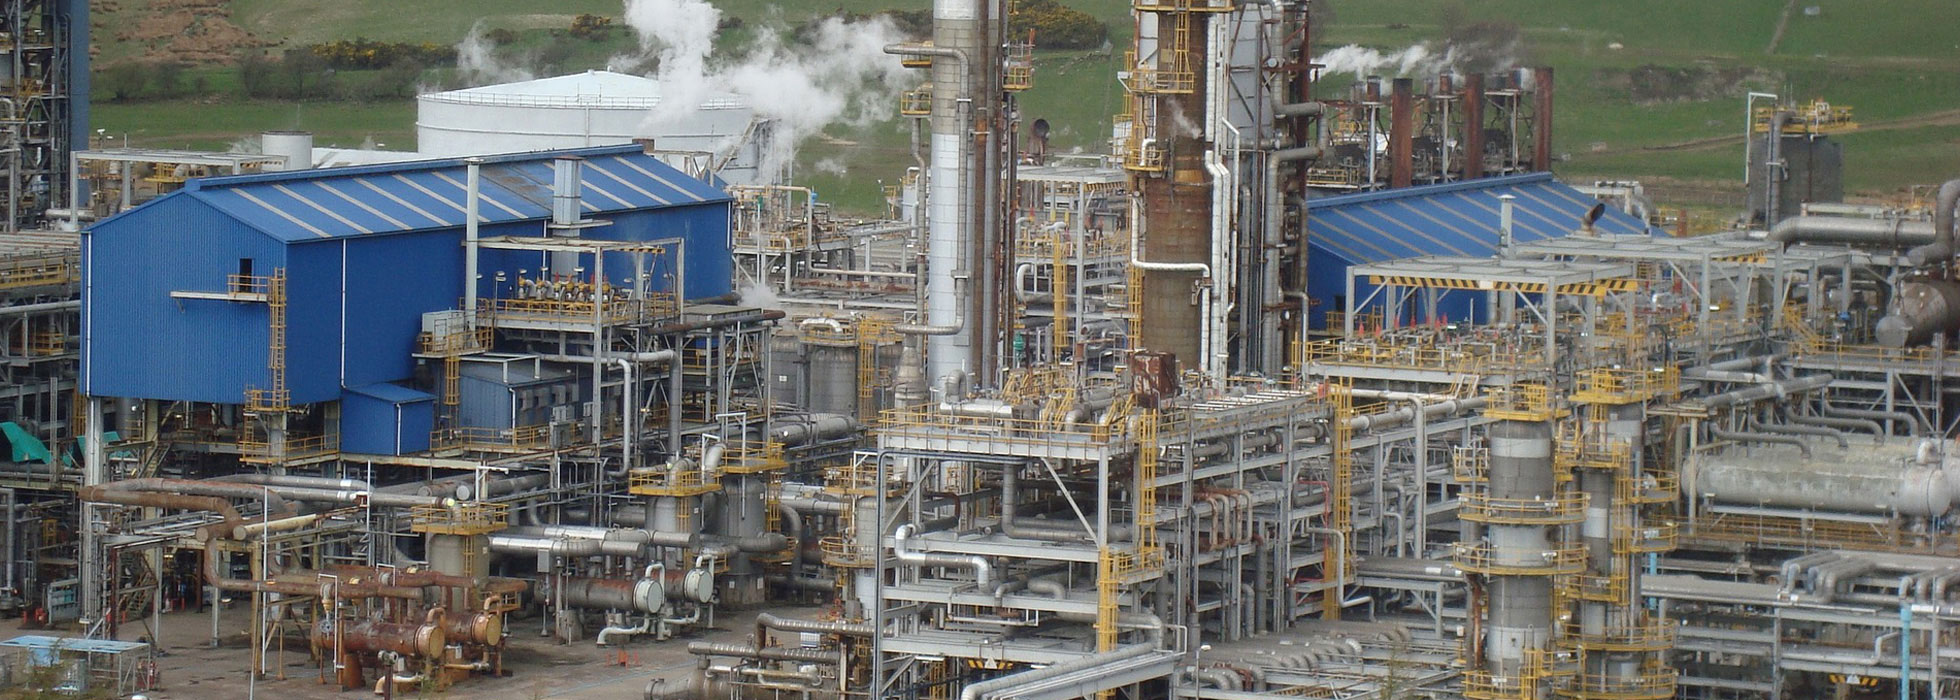 Refineries and Petrochemicals